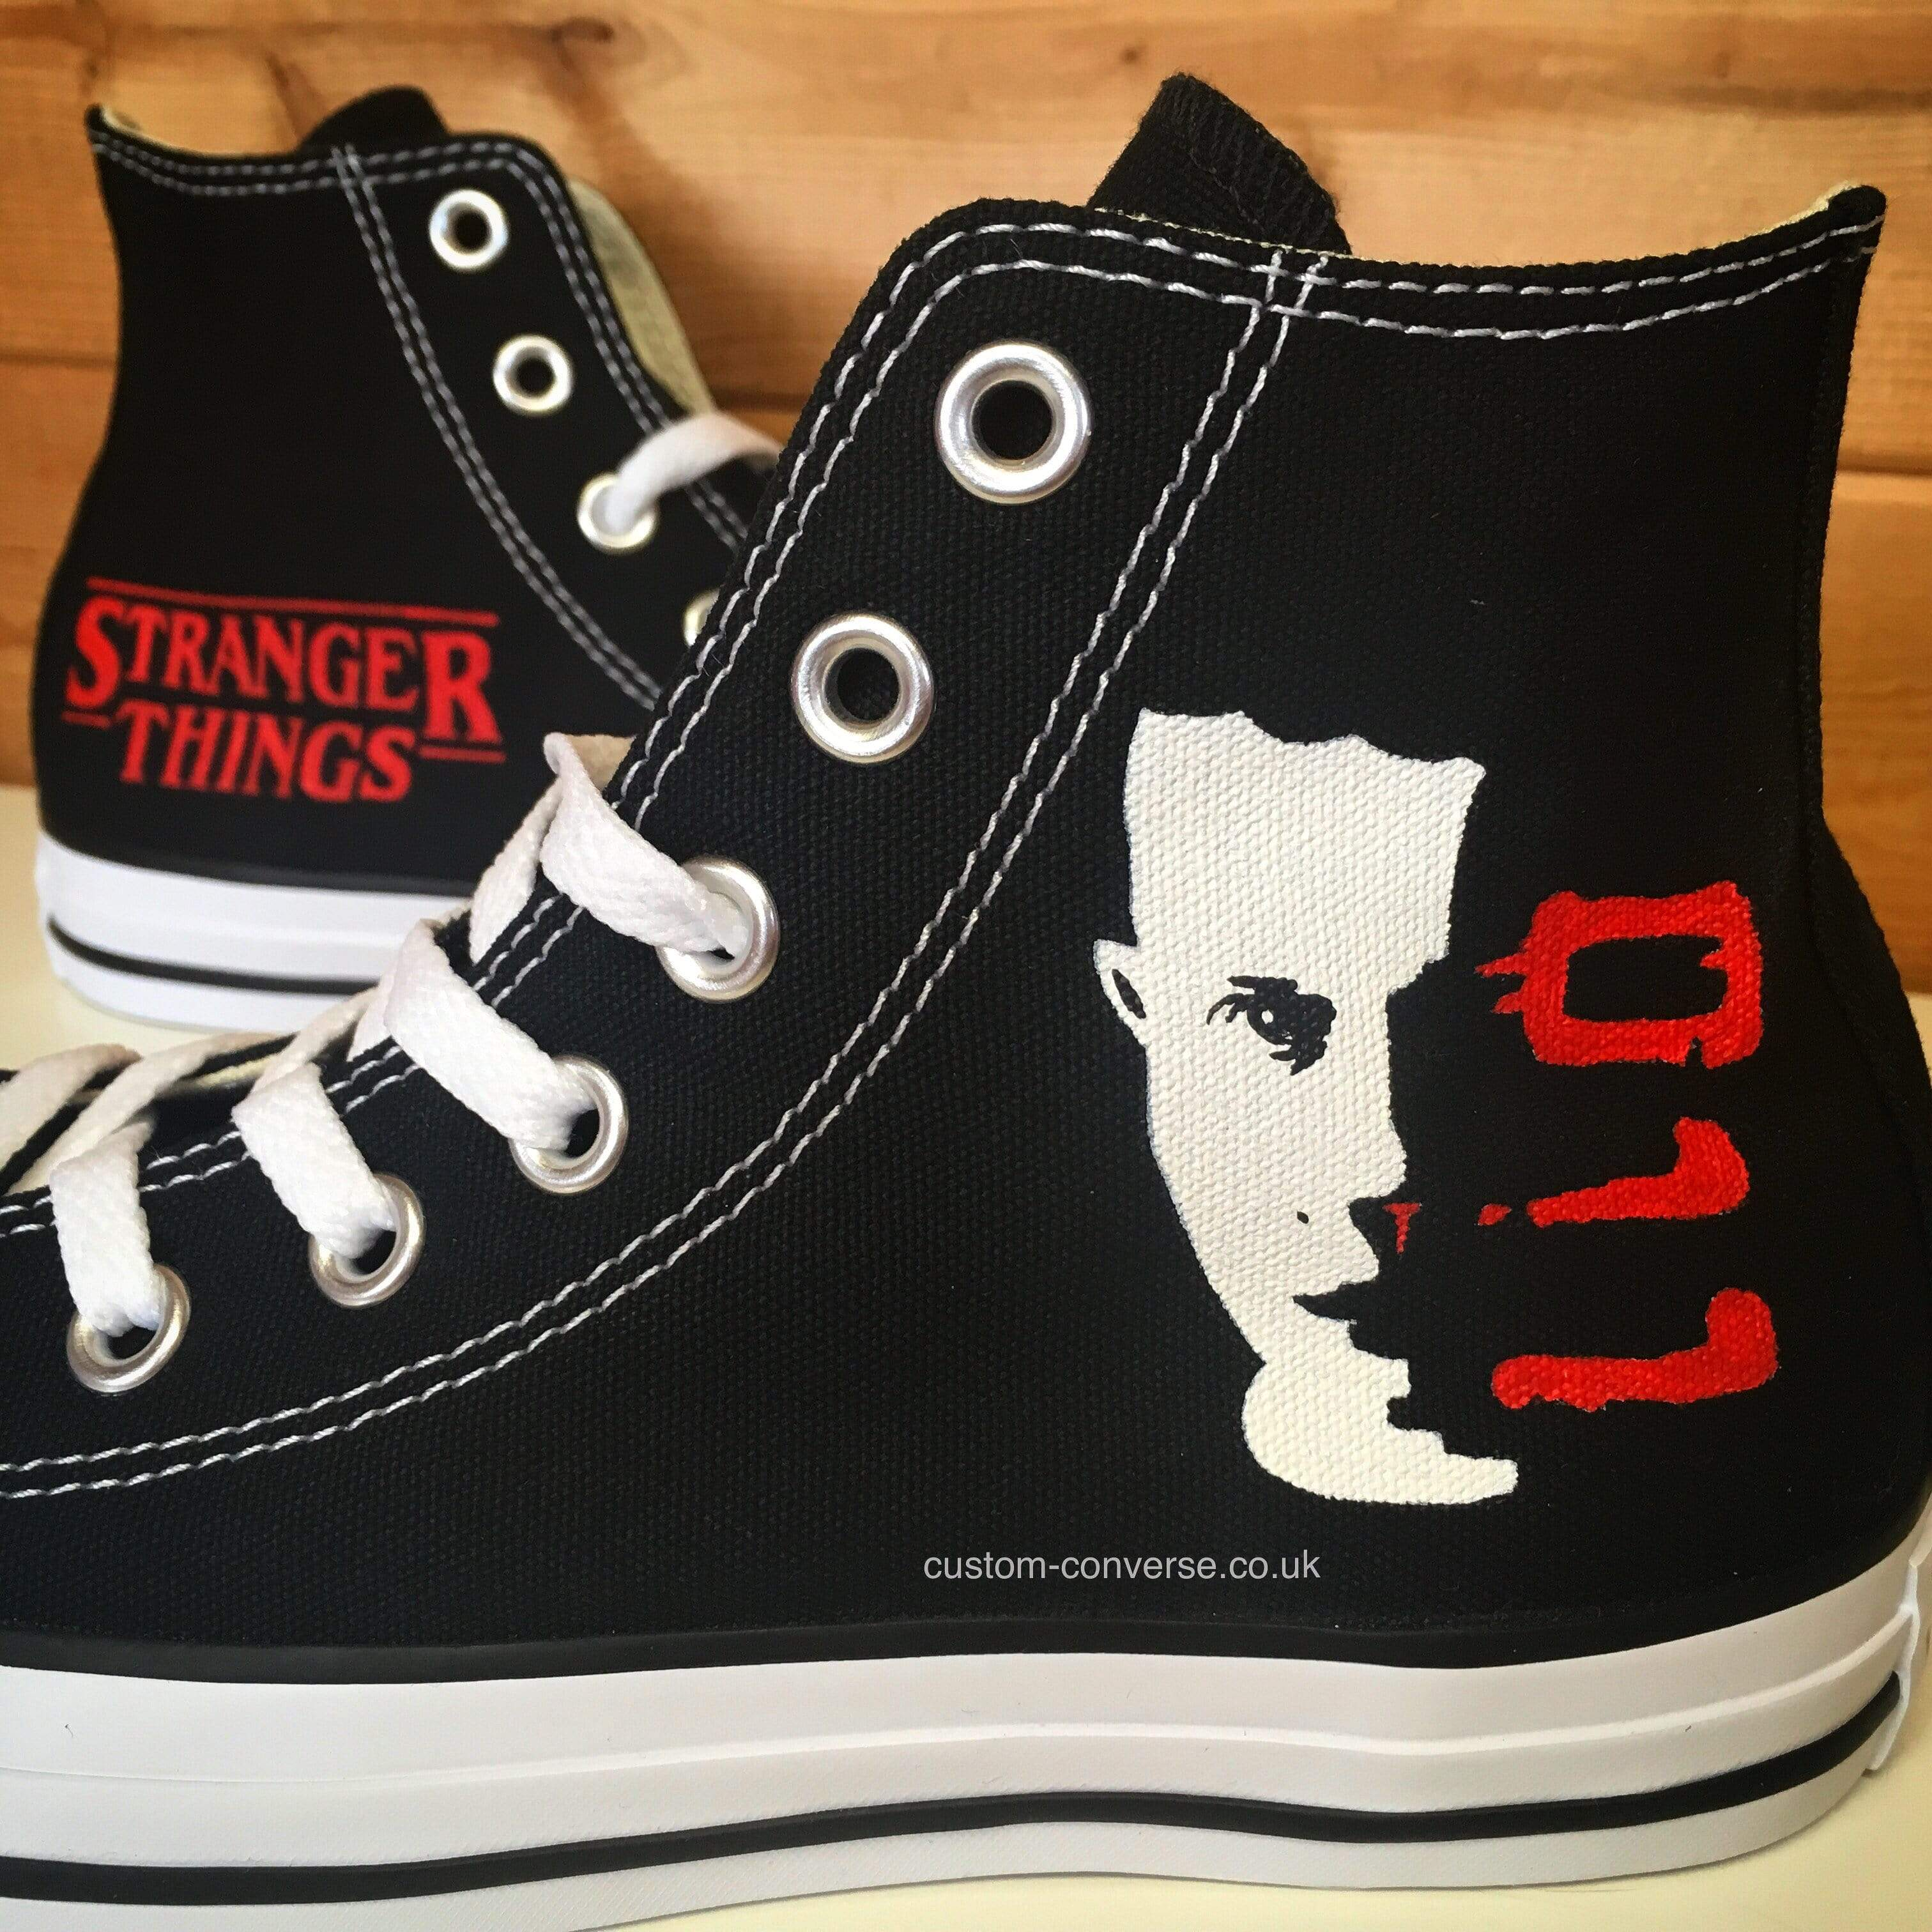 converse stranger things